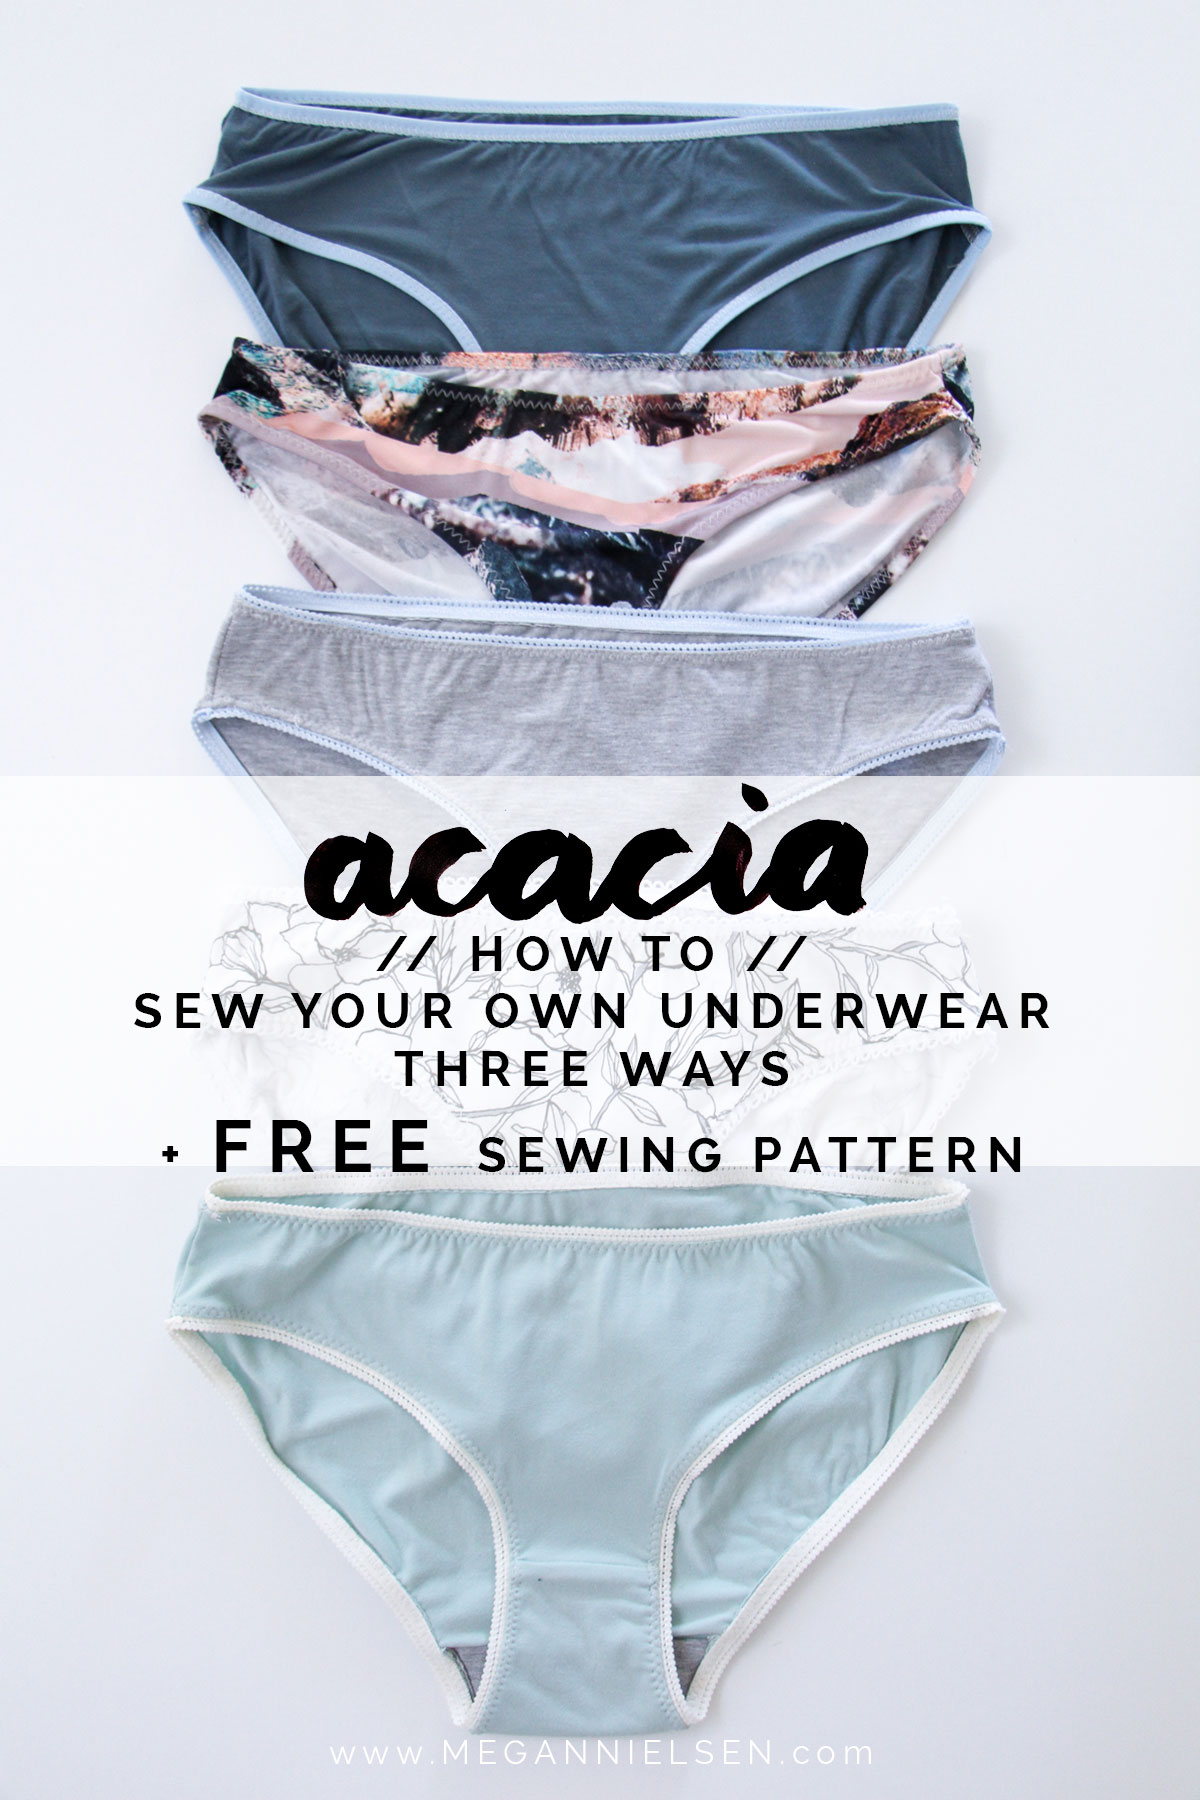 How to sew your own underwear with FREE sewing pattern by Megan Nielsen // includes three methods for attaching elastic